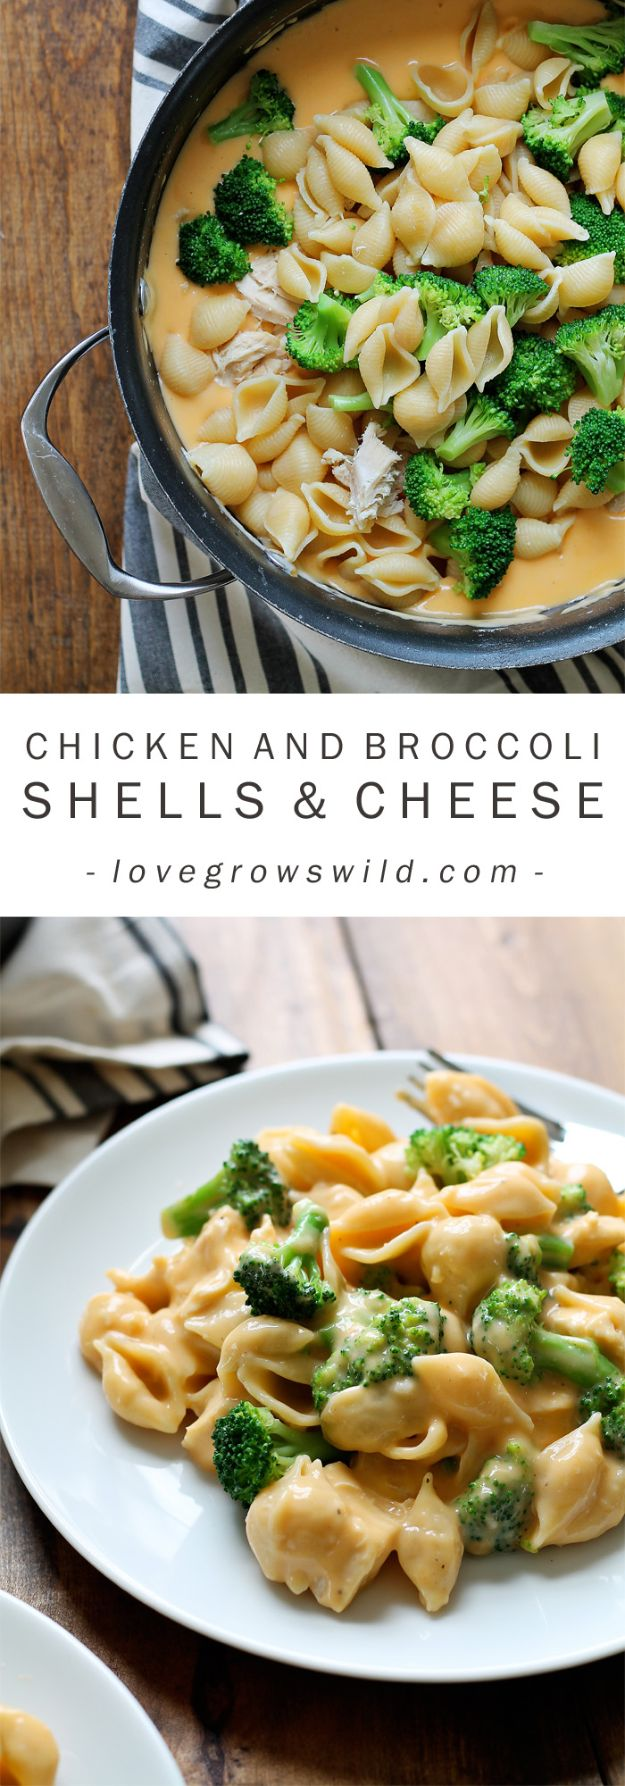 Easy Dinner Recipes - Chicken and Broccoli Shells and Cheese - Quick and Simple Dinner Recipe Ideas for Weeknight and Last Minute Supper - Chicken, Ground Beef, Fish, Pasta, Healthy Salads, Low Fat and Vegetarian Dishes - Easy Meals for the Family, for Two, for One and Cook Ahead Crockpoit Dinners - Cheap Casseroles and Budget Friendly Foods to Make at Home http://diyjoy.com/easy-dinner-recipes